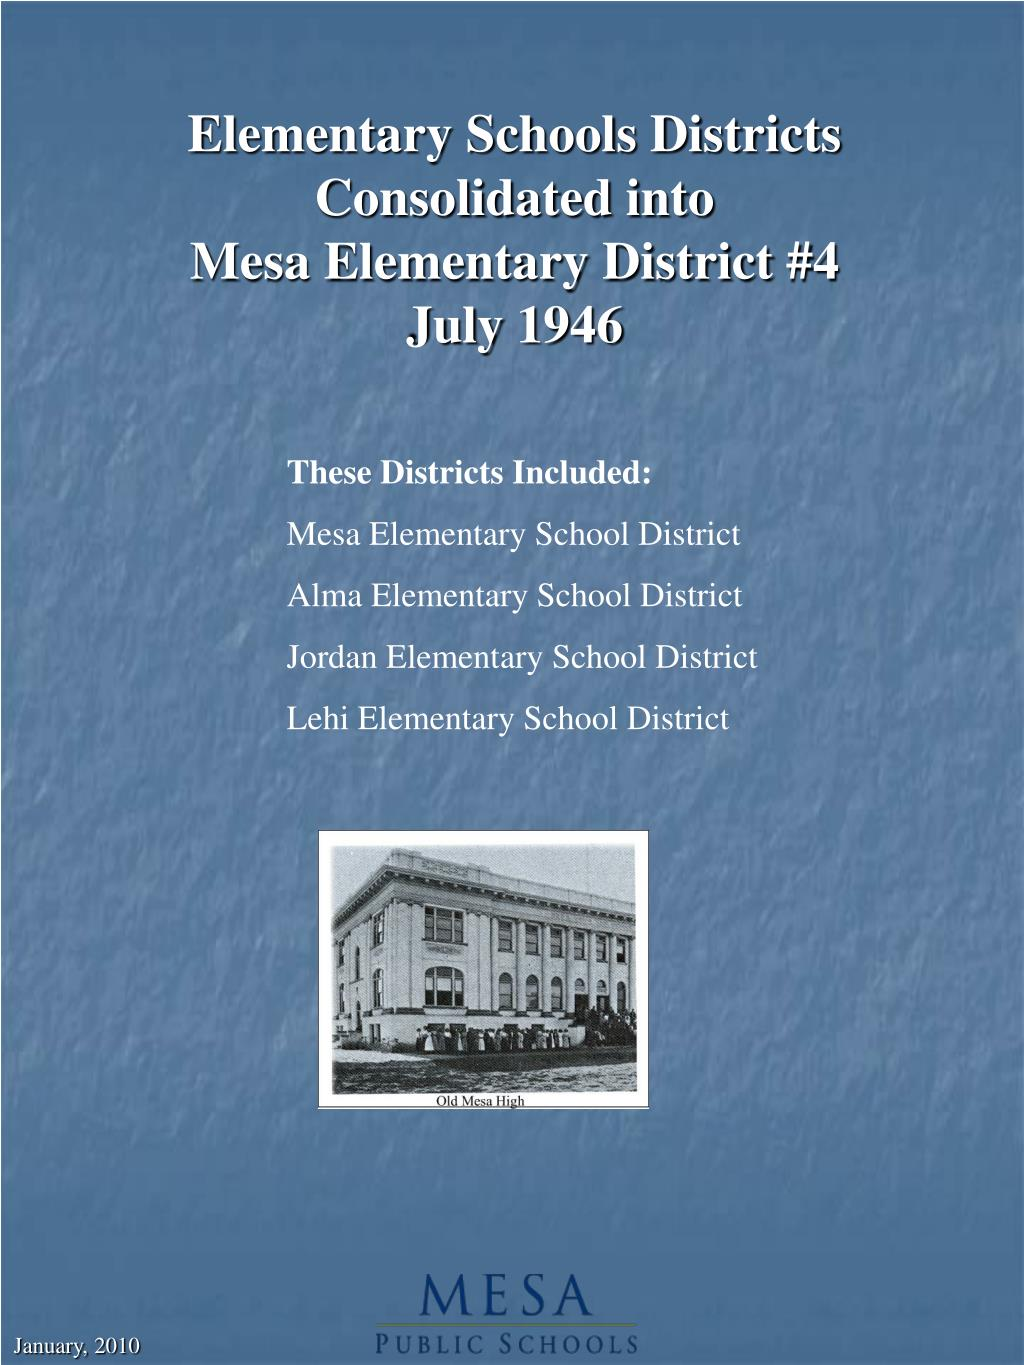 Elementary Schools Districts